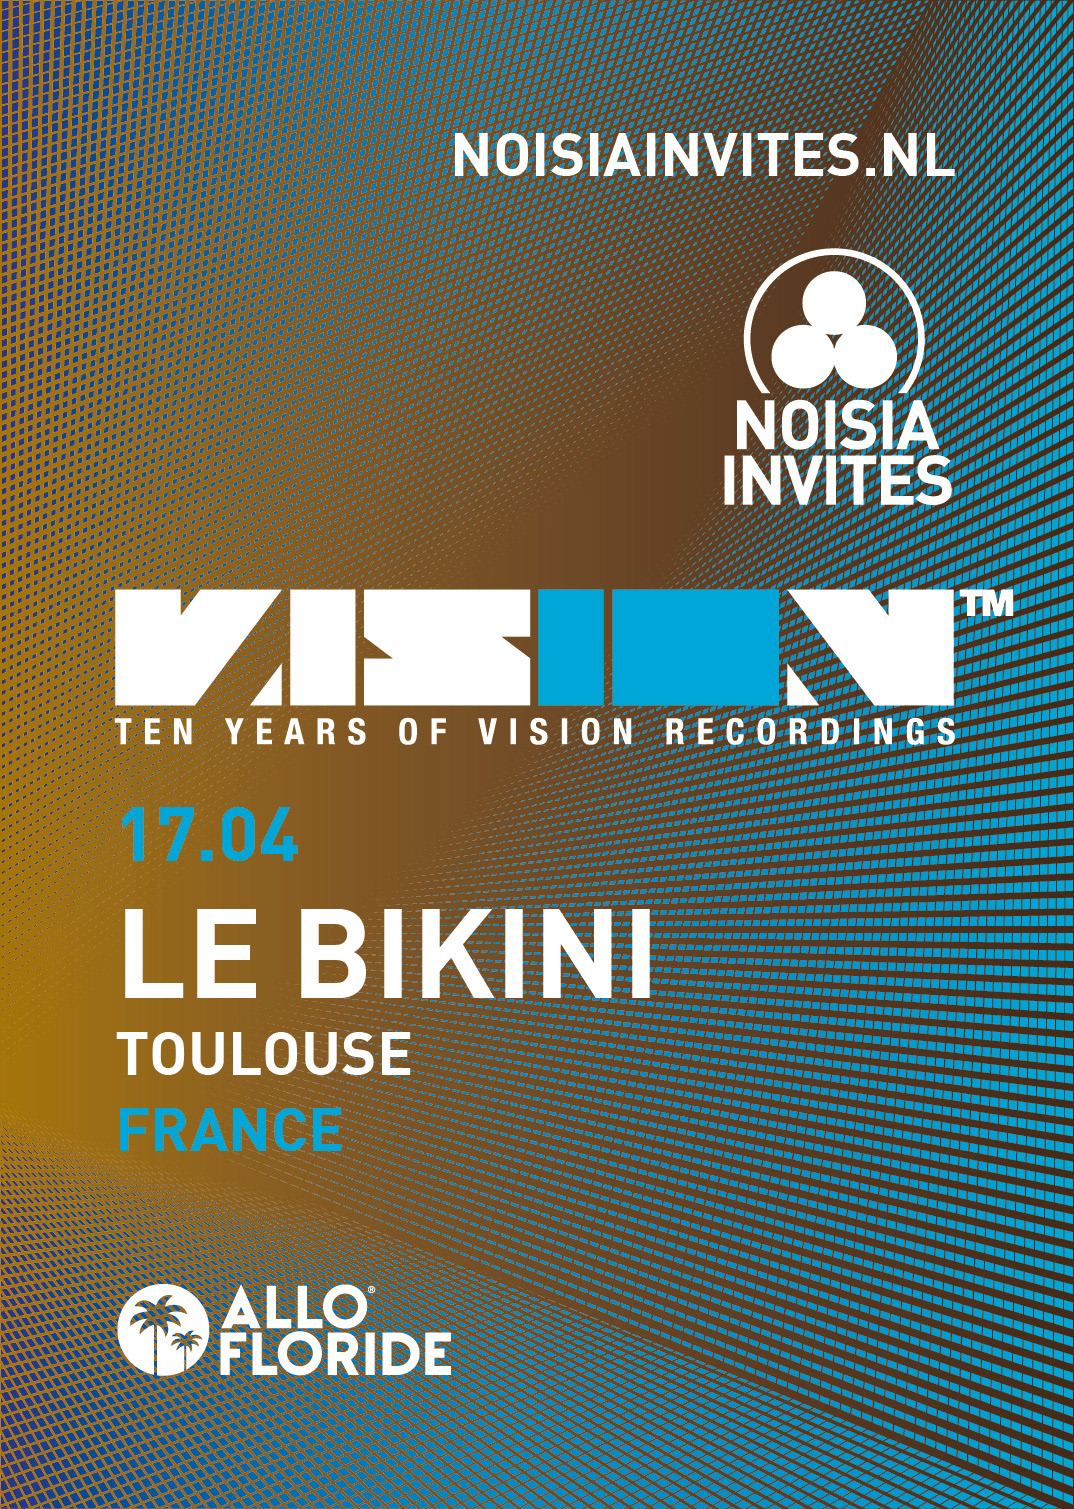 Poster design visio - Poster Ontwerp Voor Noisia Invites 10 Years Of Vision Poster Design For Noisia Invites 10 Years Of Vision